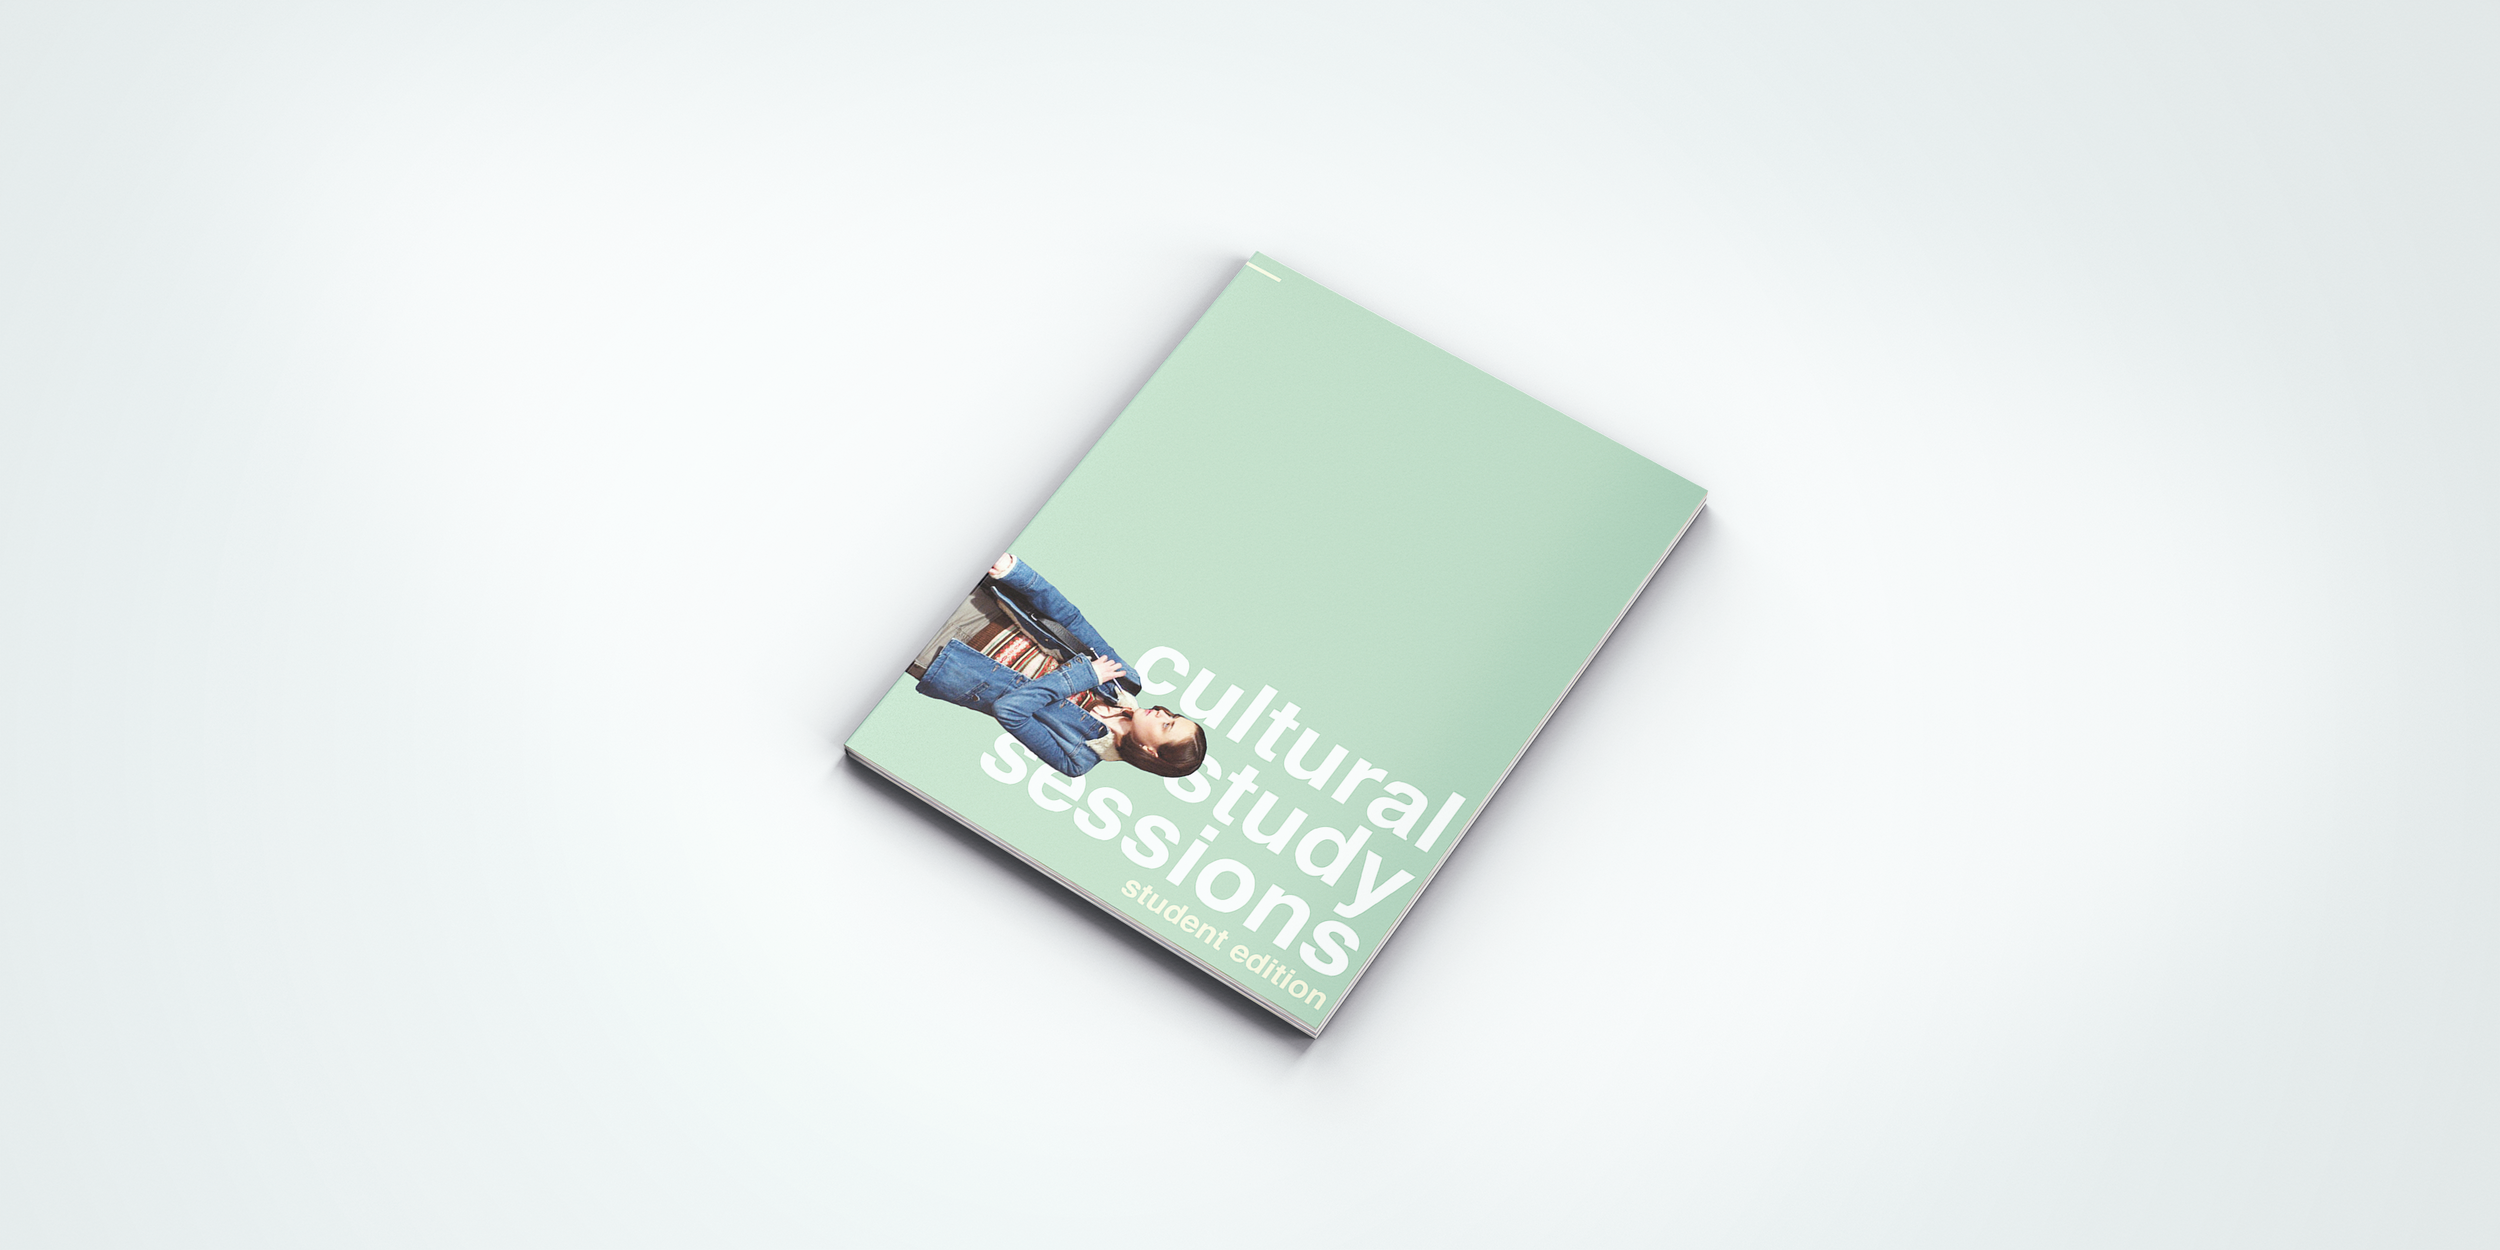 CulturalStudySessions_Cover_Mockup.png